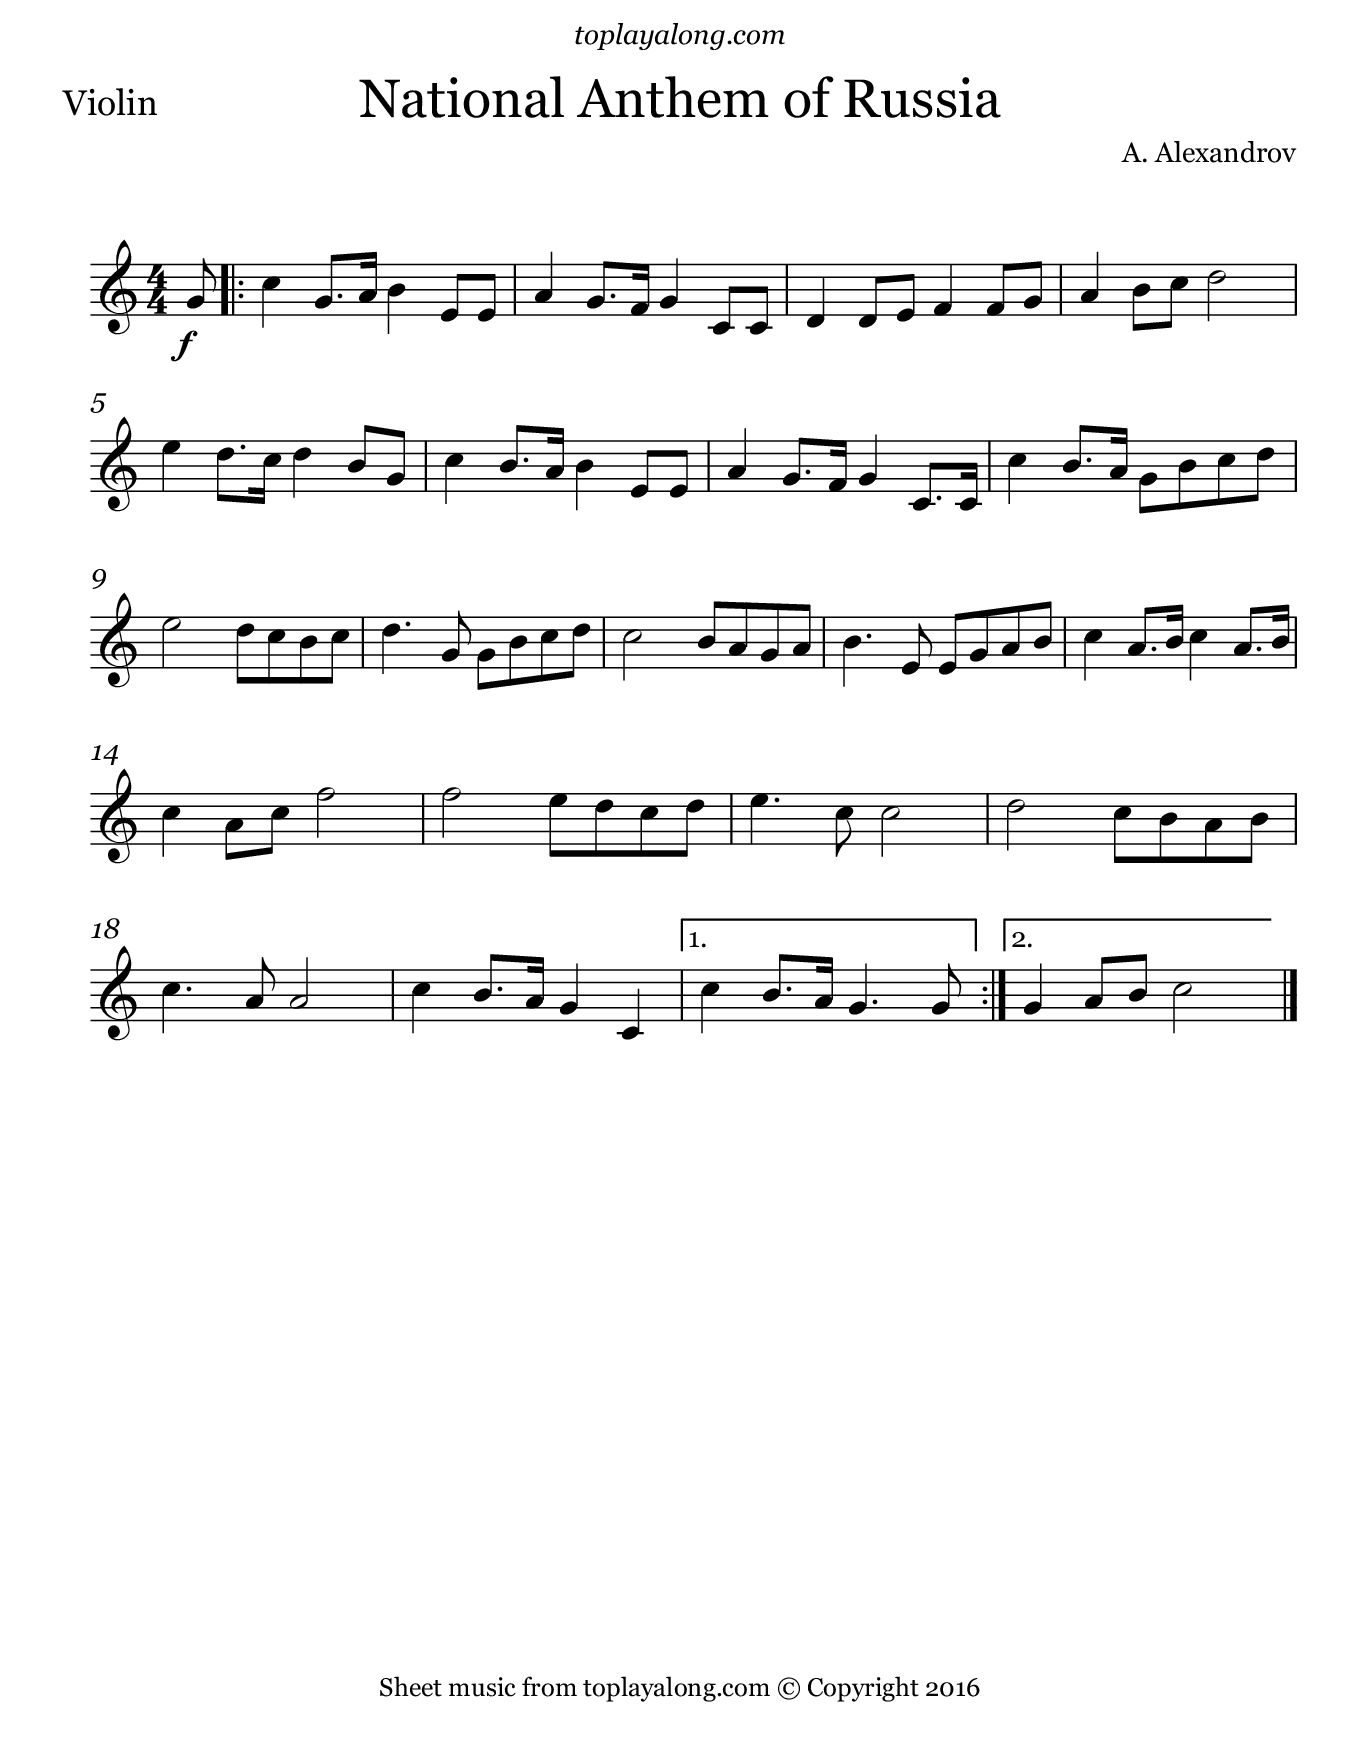 National Anthem of Russia. Sheet music for Violin, page 1.